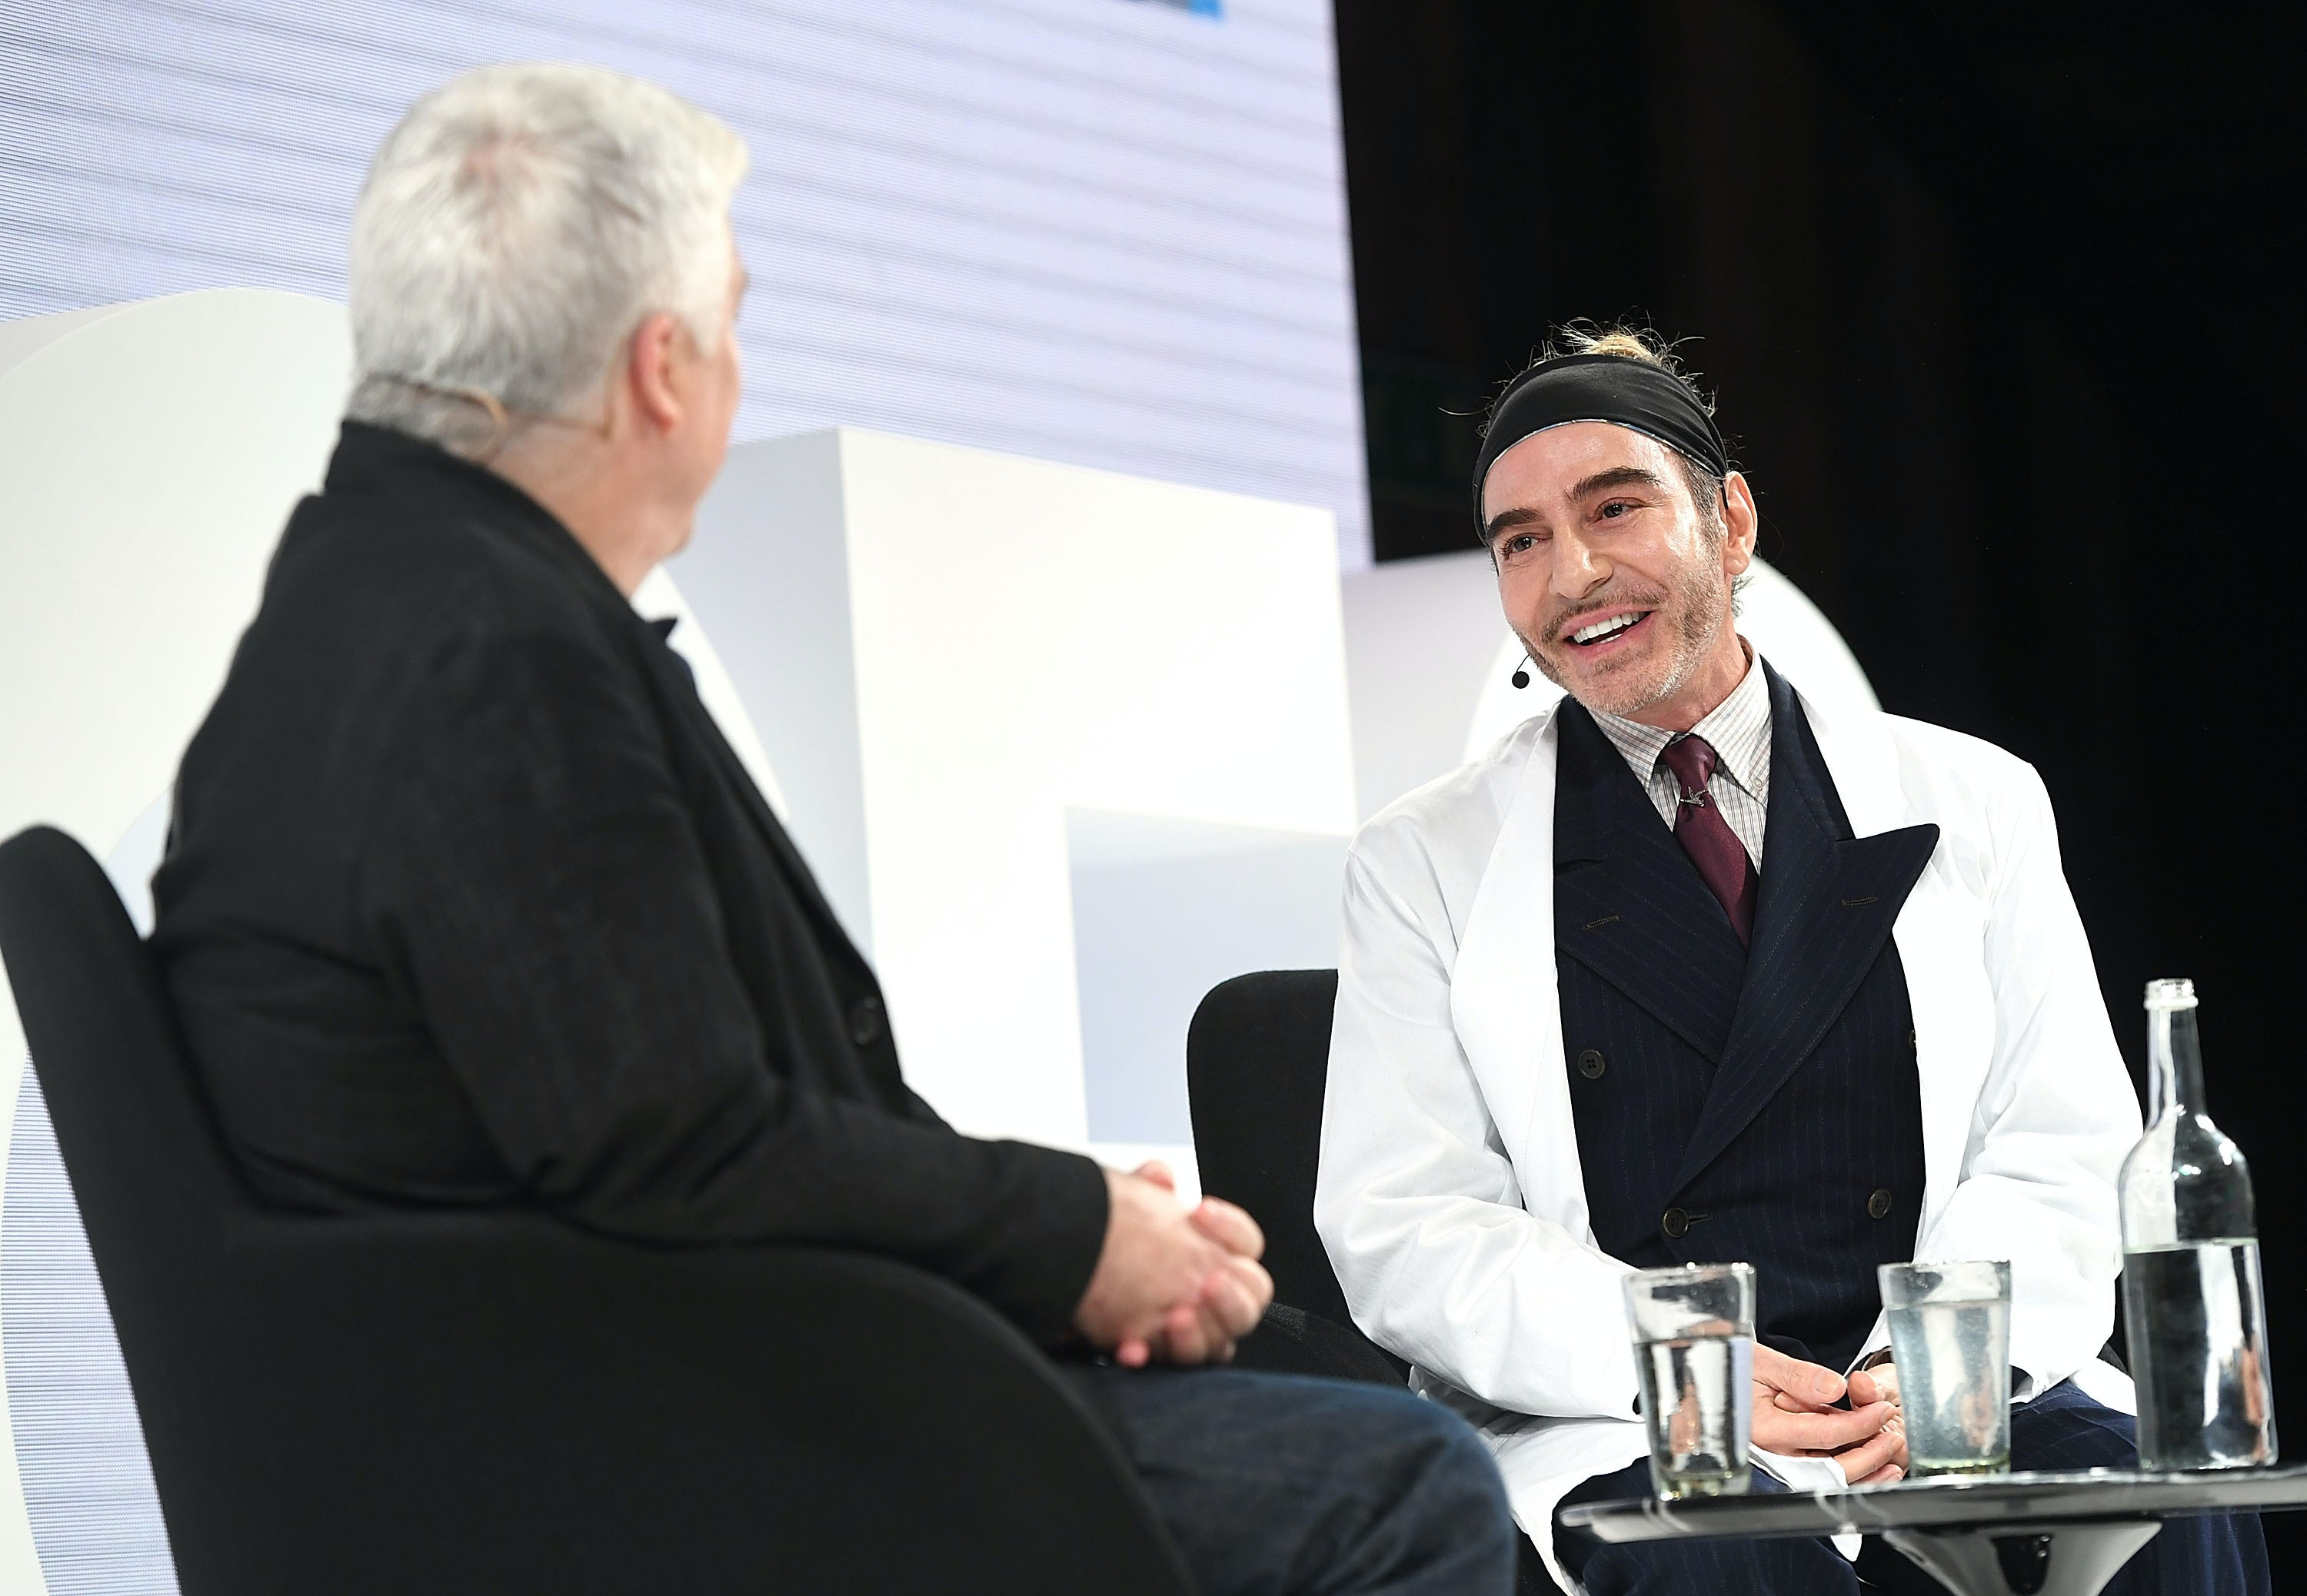 John Galliano in conversation with Tim Blanks on the VOICES stage in December 2016   Source: Getty